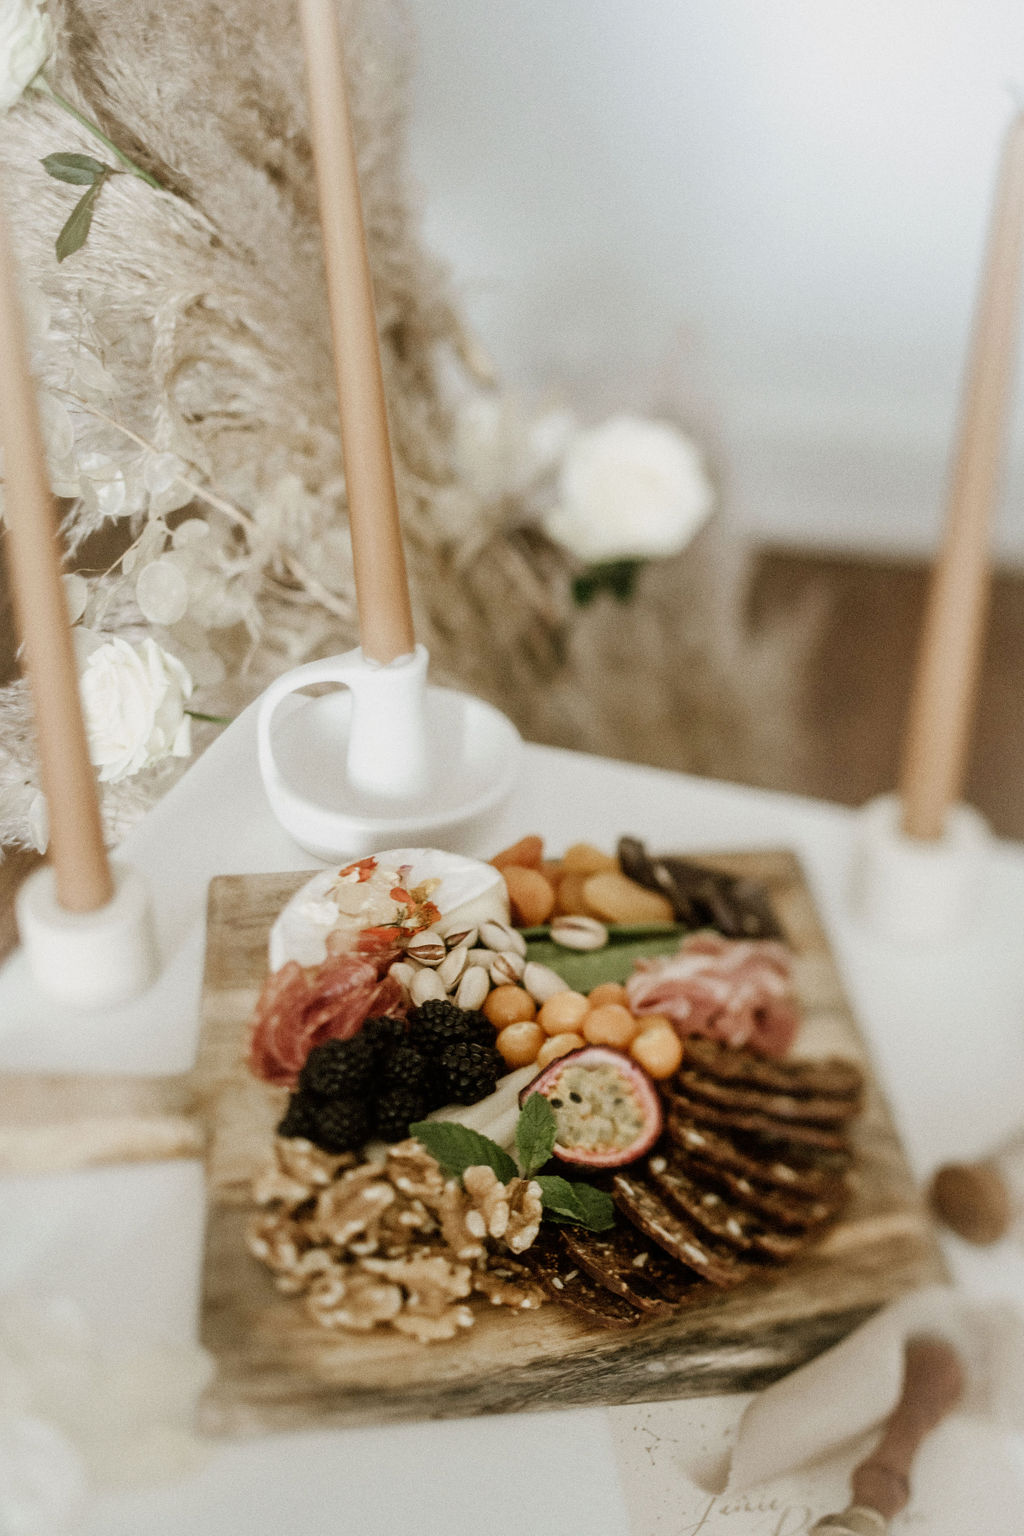 Gorgeous charcuterie platter on wedding table by Miel Snack Platters Vancouver